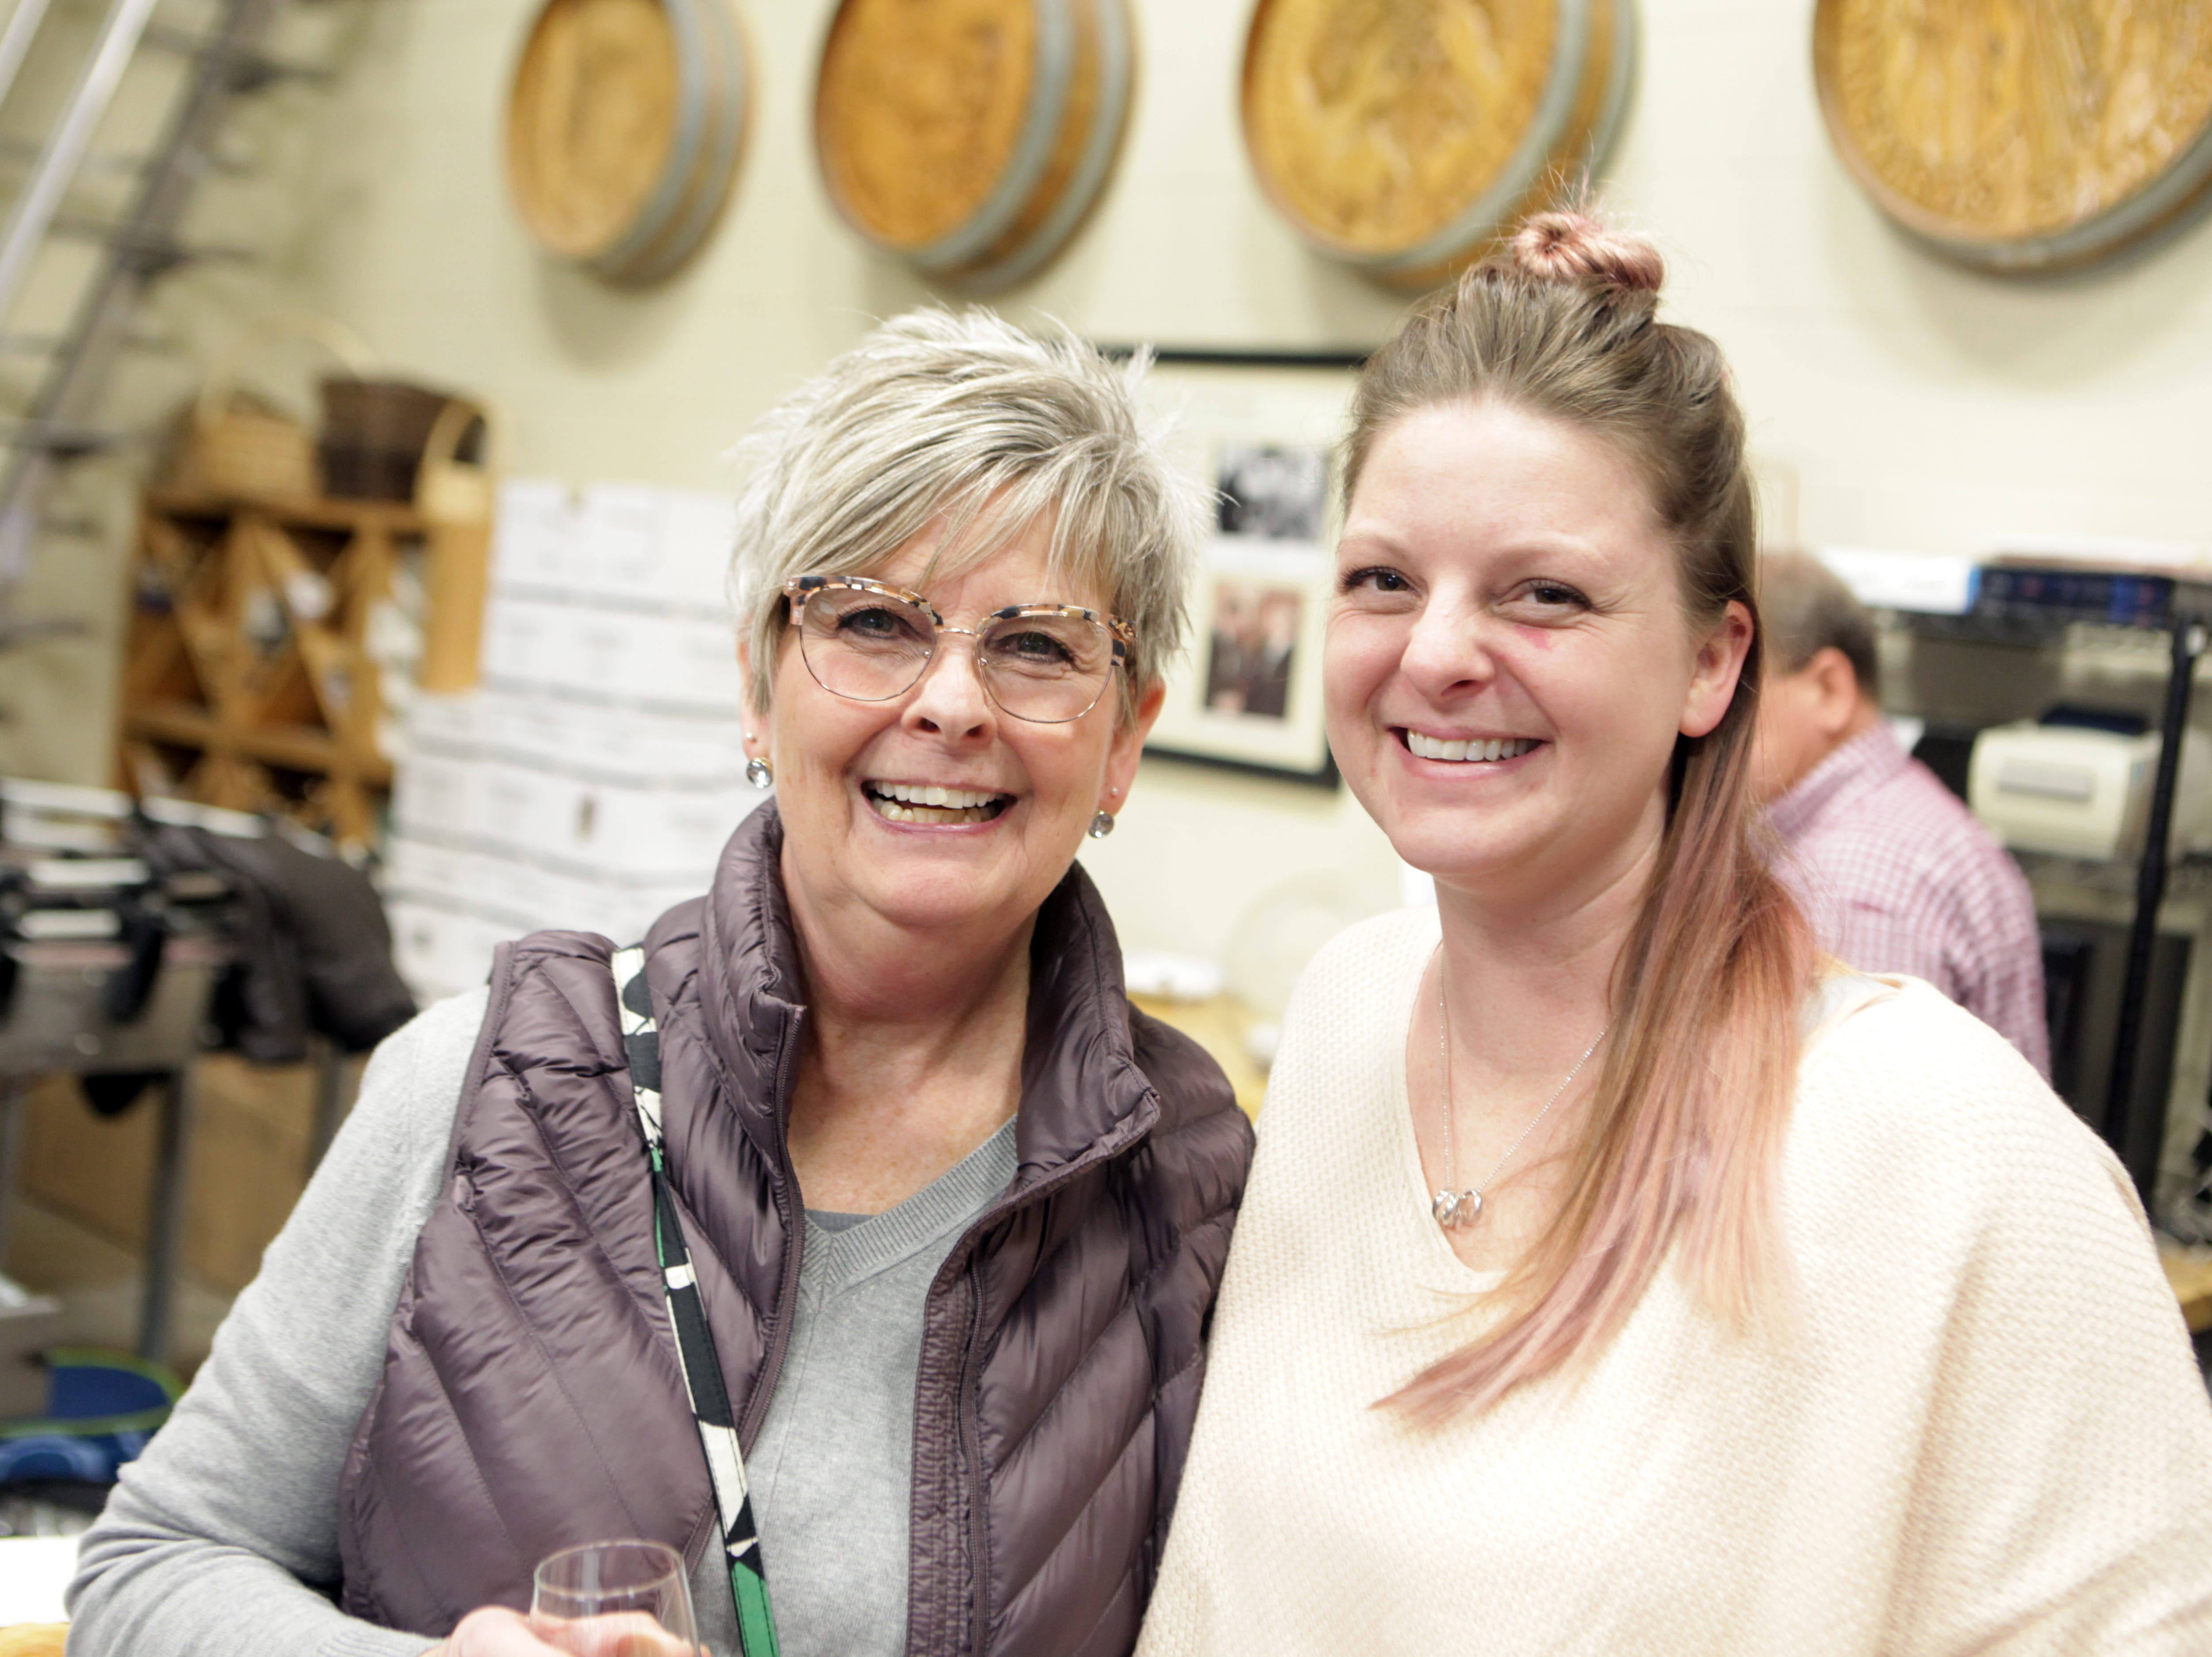 Beachaven Vineyards and Winery held a Wine and Chocolate Tasting on Sunday, Feb. 10, 2019.